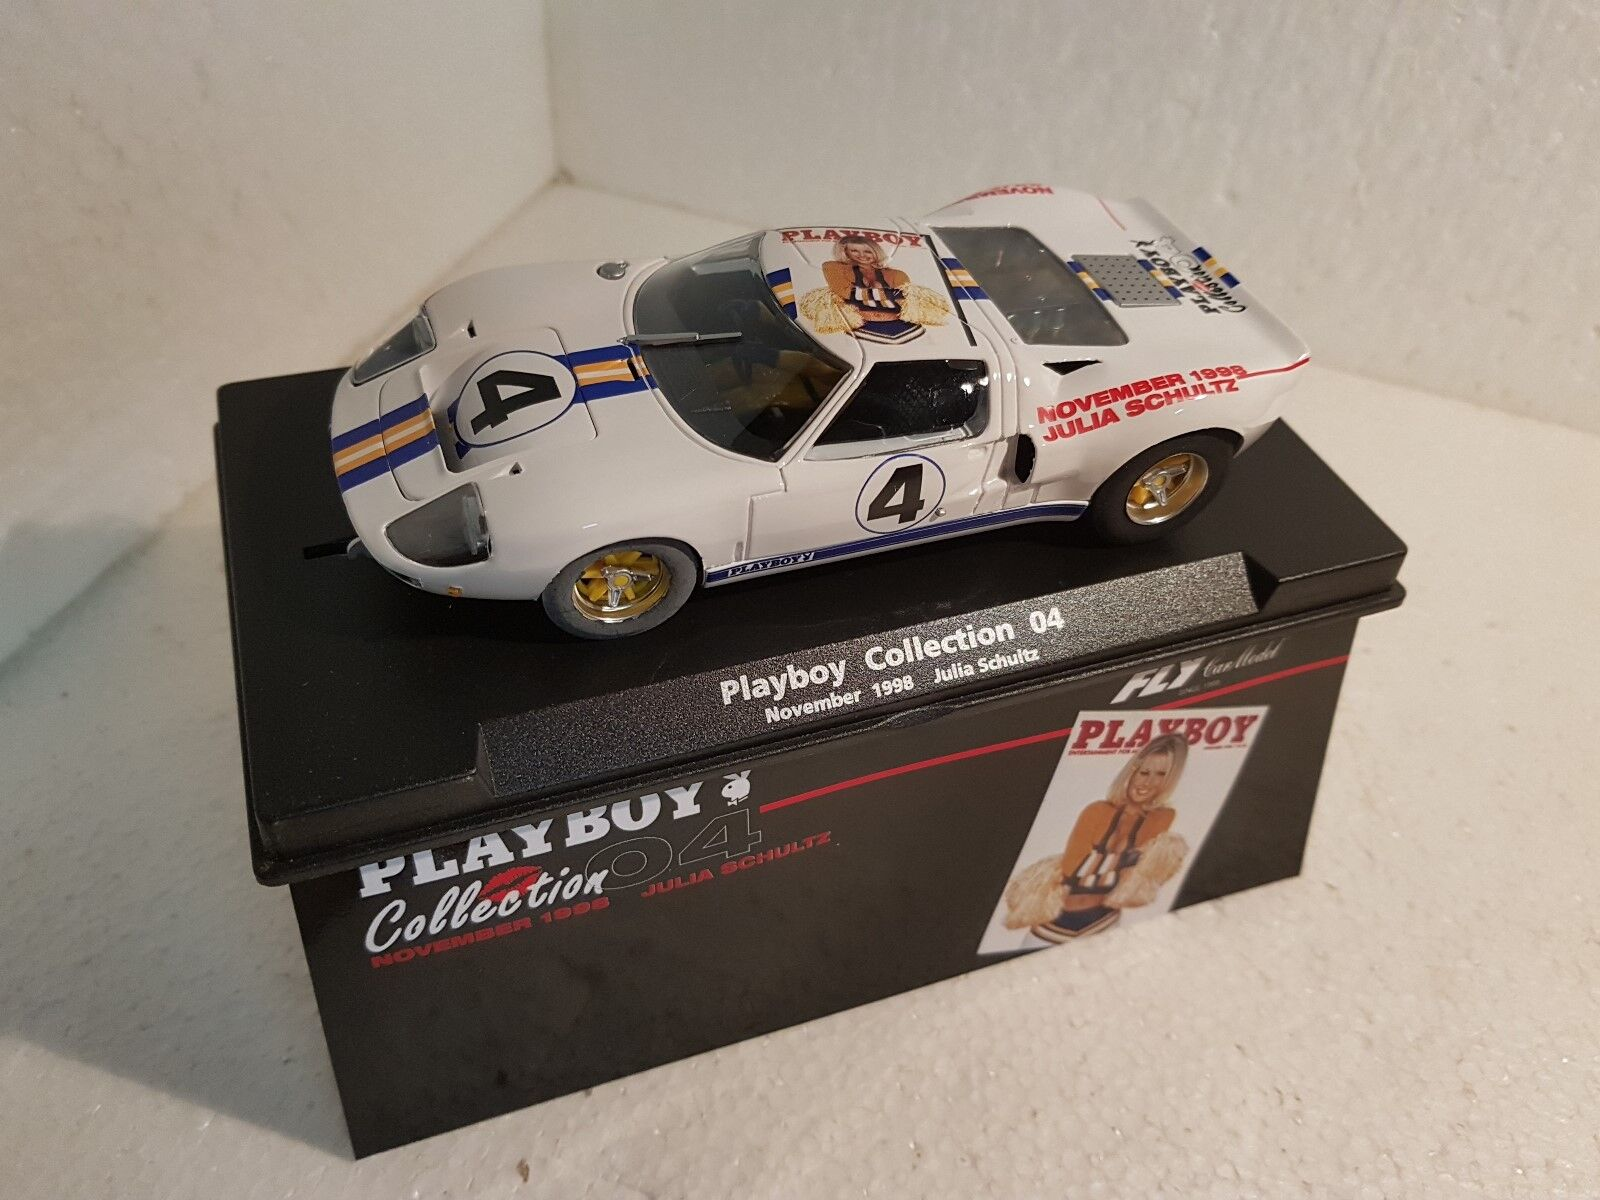 QQ 99047 Fly Ford Gt 40 Play Boy Collection 04 Novembre '88 Julia Schultz